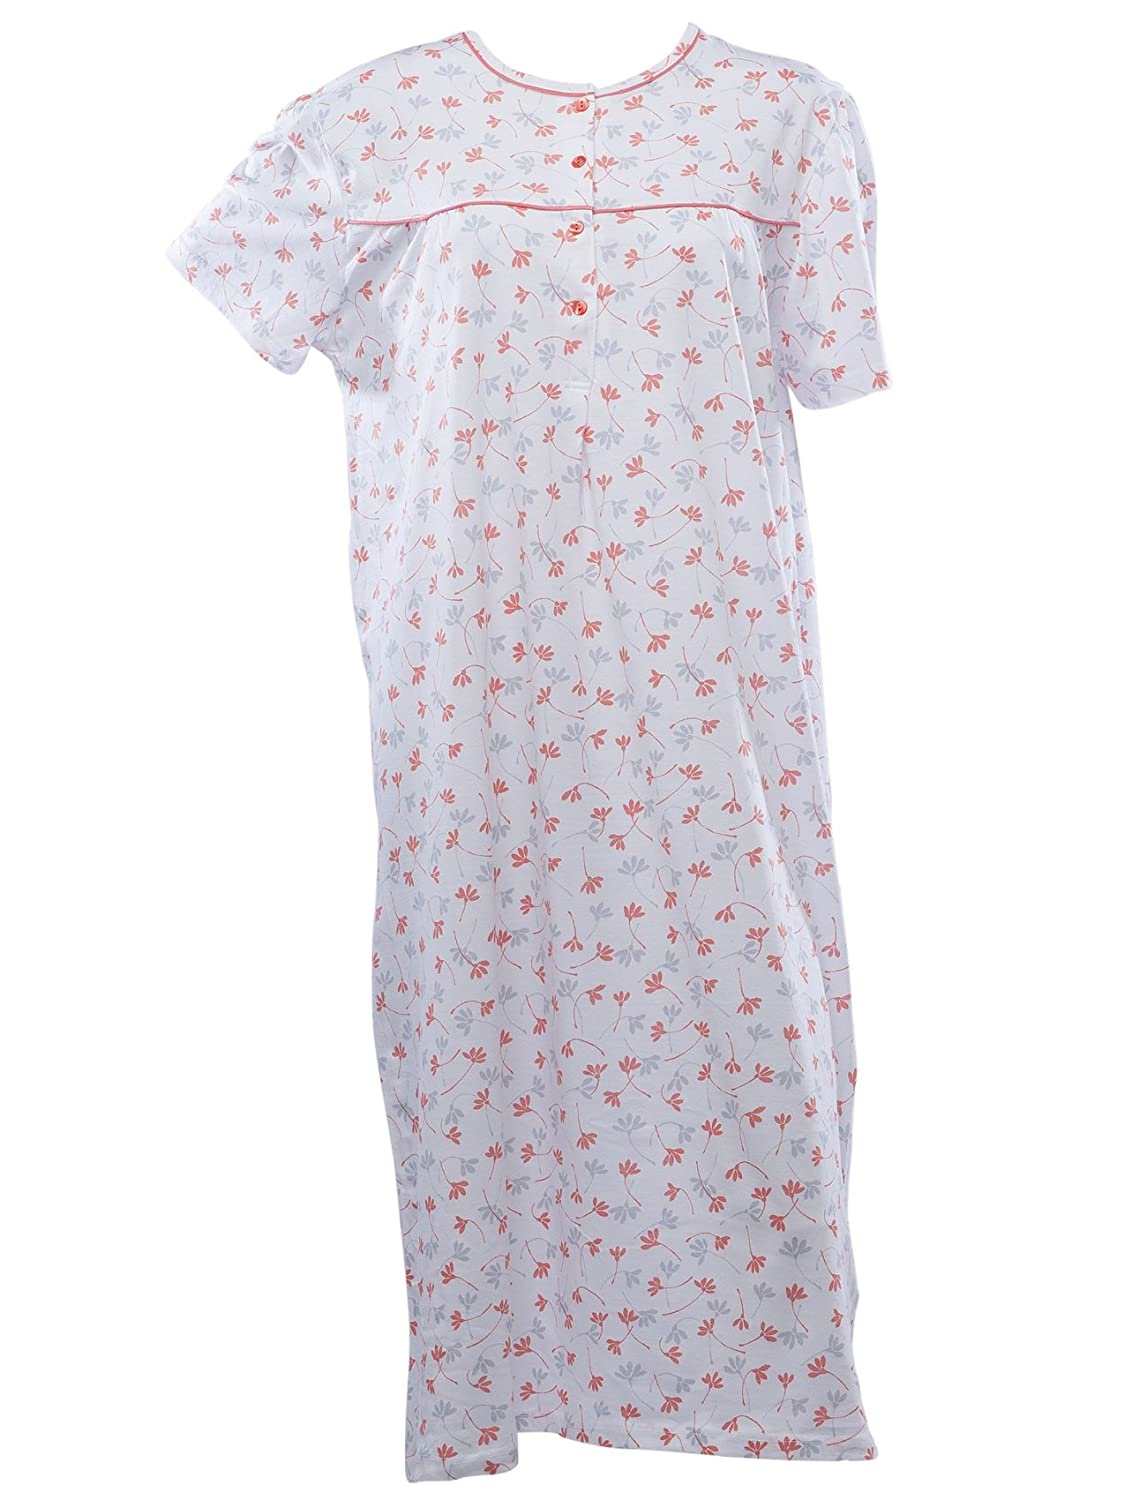 Waite Ltd Ladies Jersey Cotton Floral Nightdress Womens Short Sleeved Flower  Nightie (Blue or Orange)  Amazon.co.uk  Clothing 383024fa6